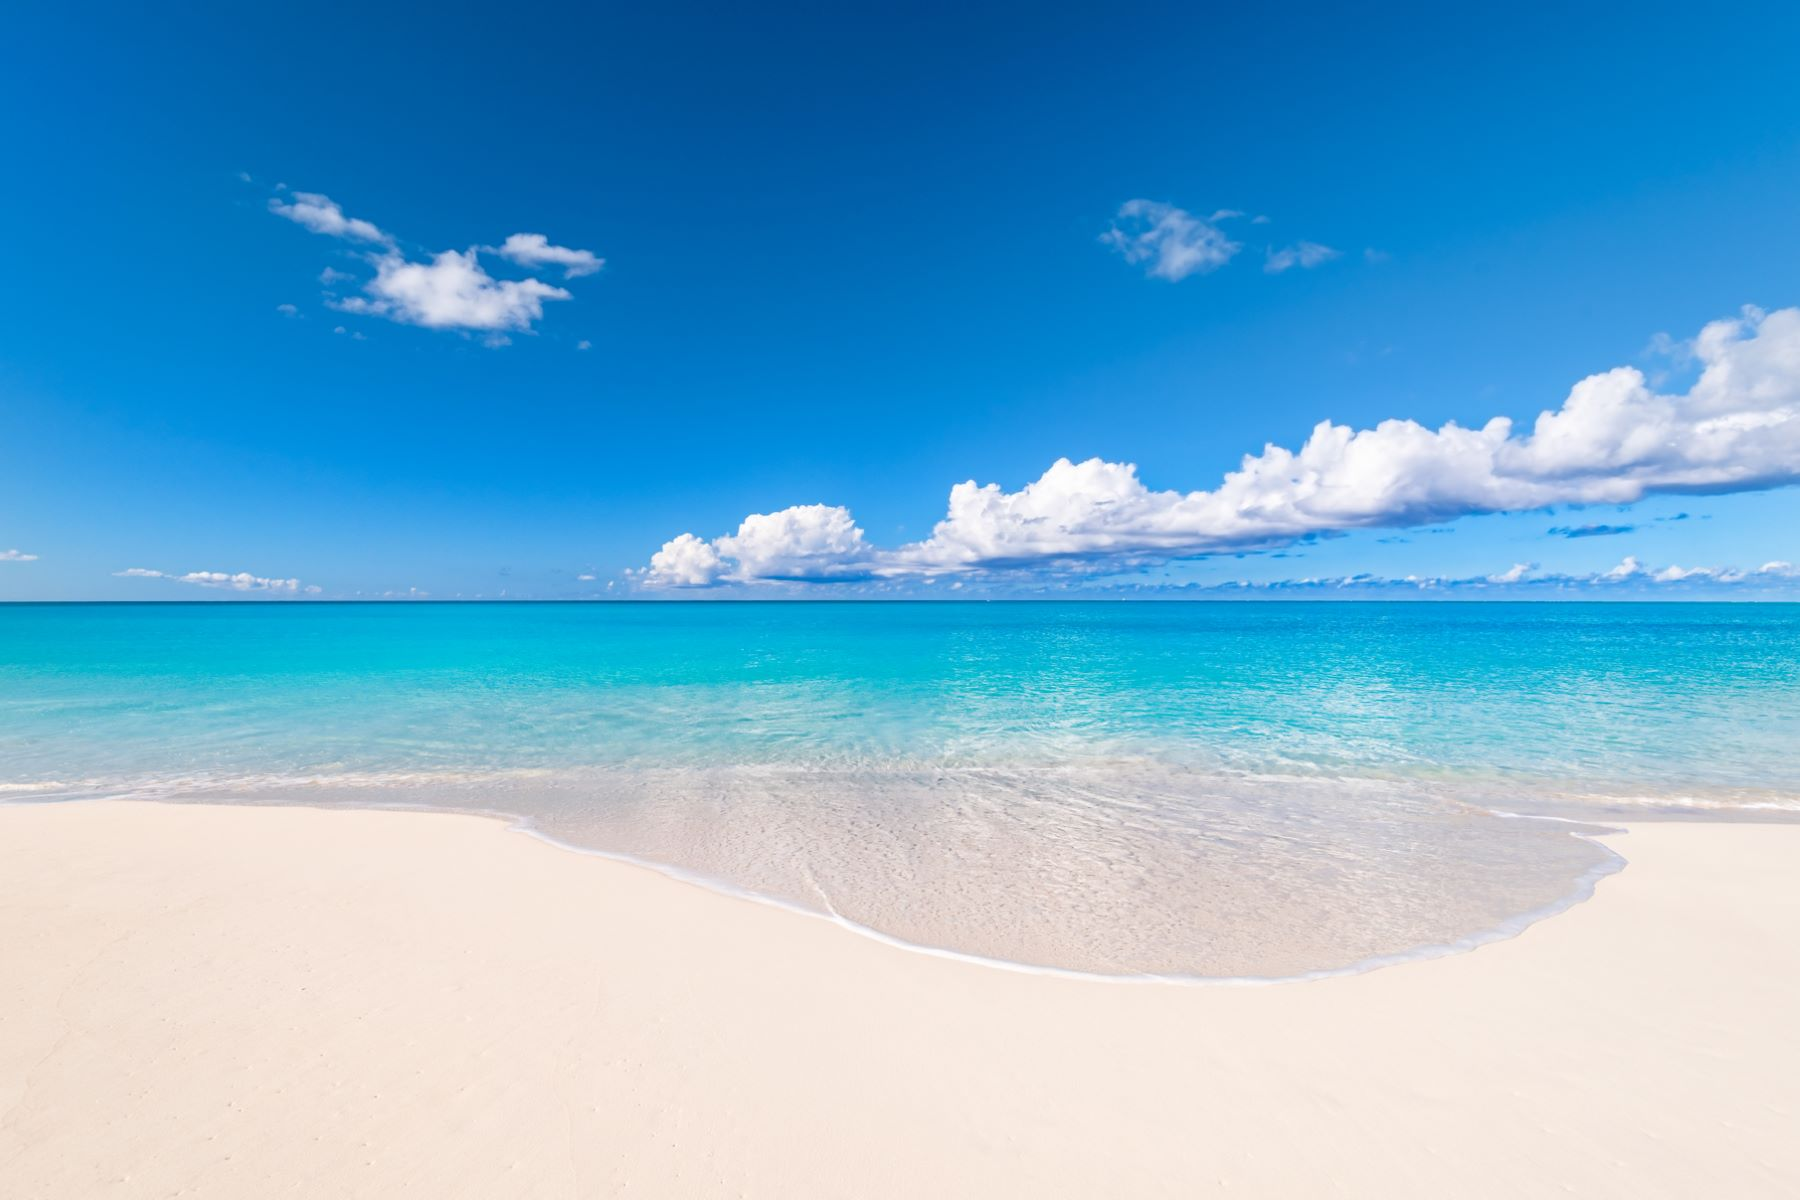 Property for Sale at Pine Cay Northshore Pine Cay, Pine Cay Turks And Caicos Islands